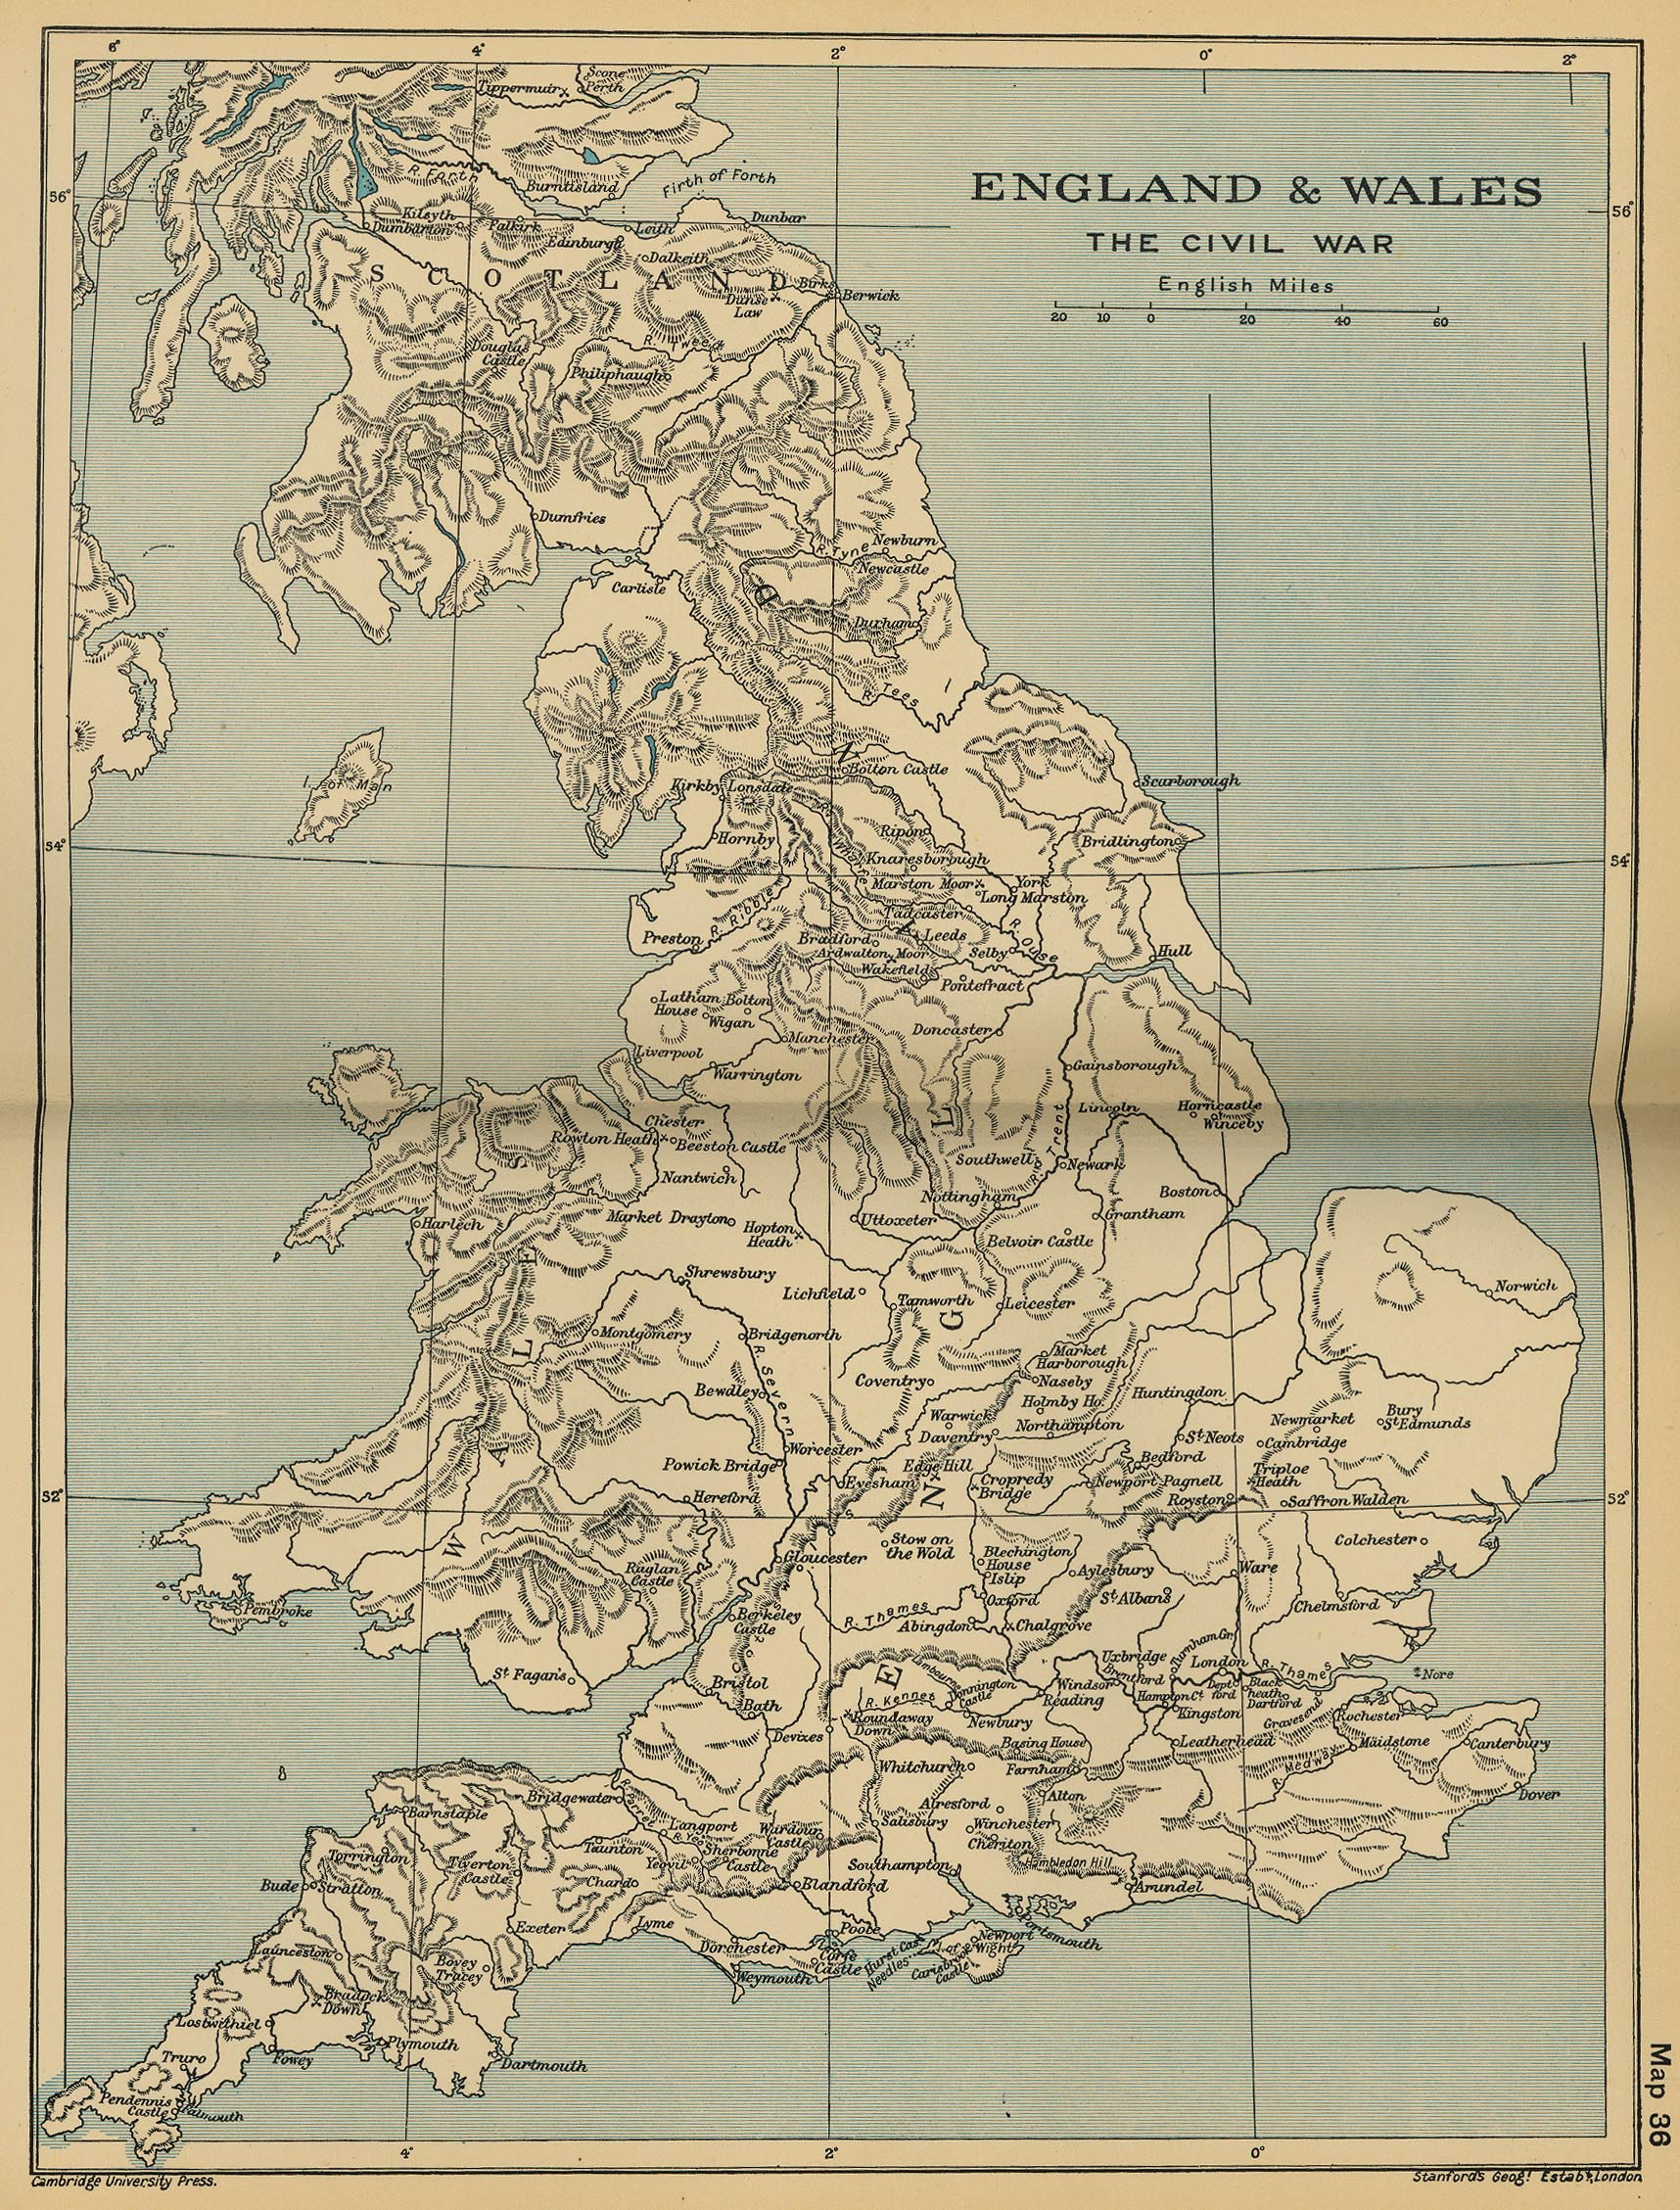 Map of England and Wales: The Civil War 1642-1651